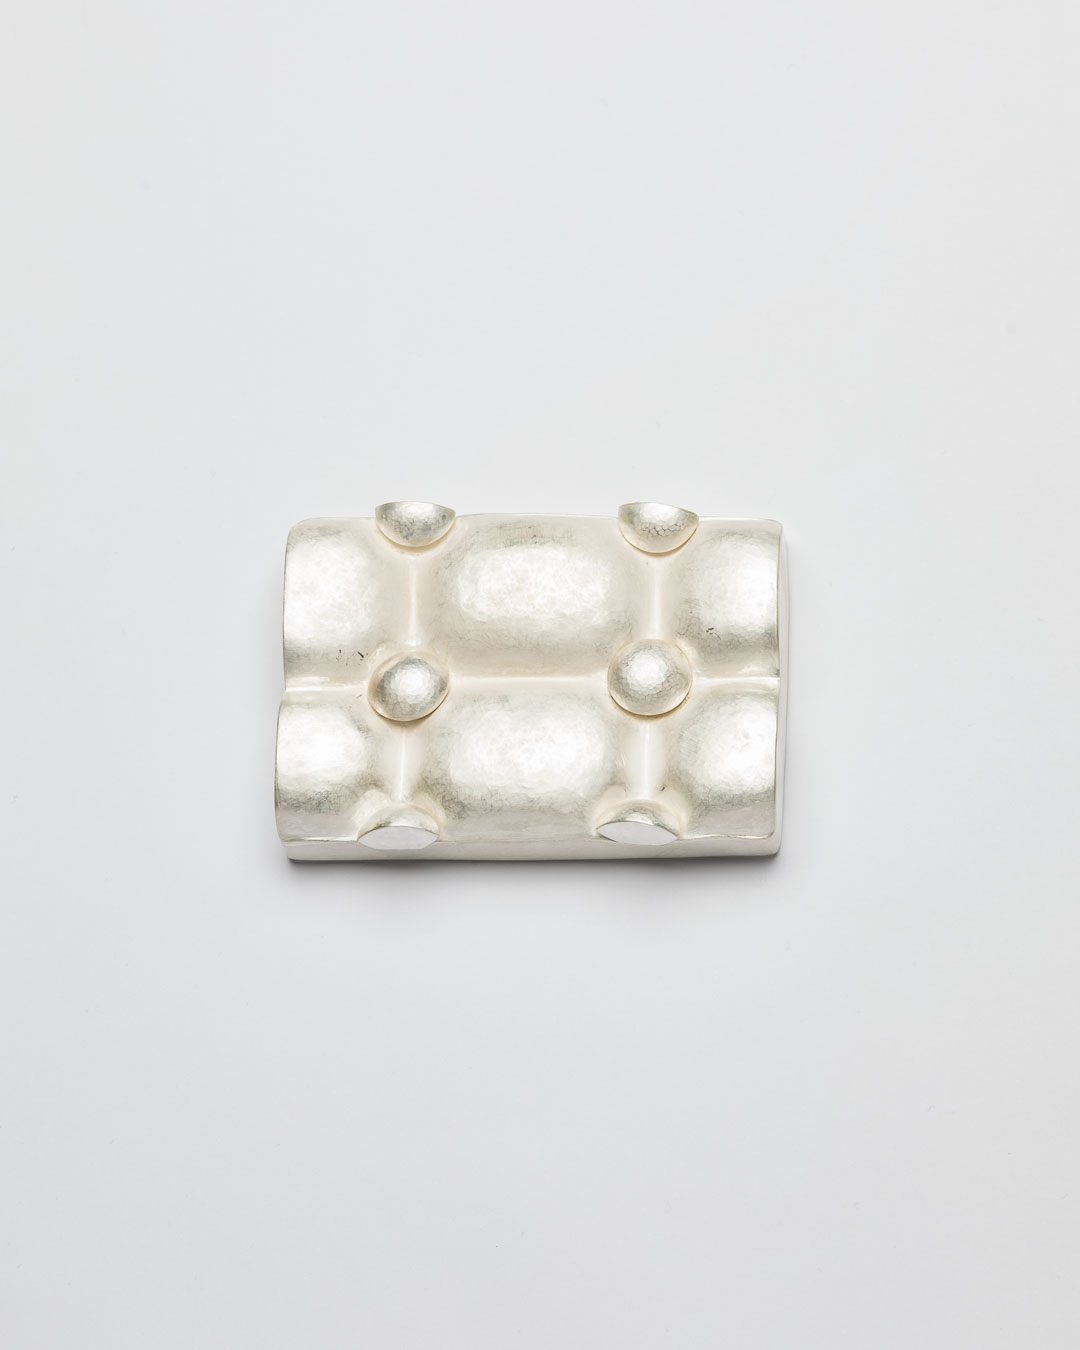 Christine Matthias, untitled, 2017, brooch; silver, 105 x 75 x 25 mm, €5200